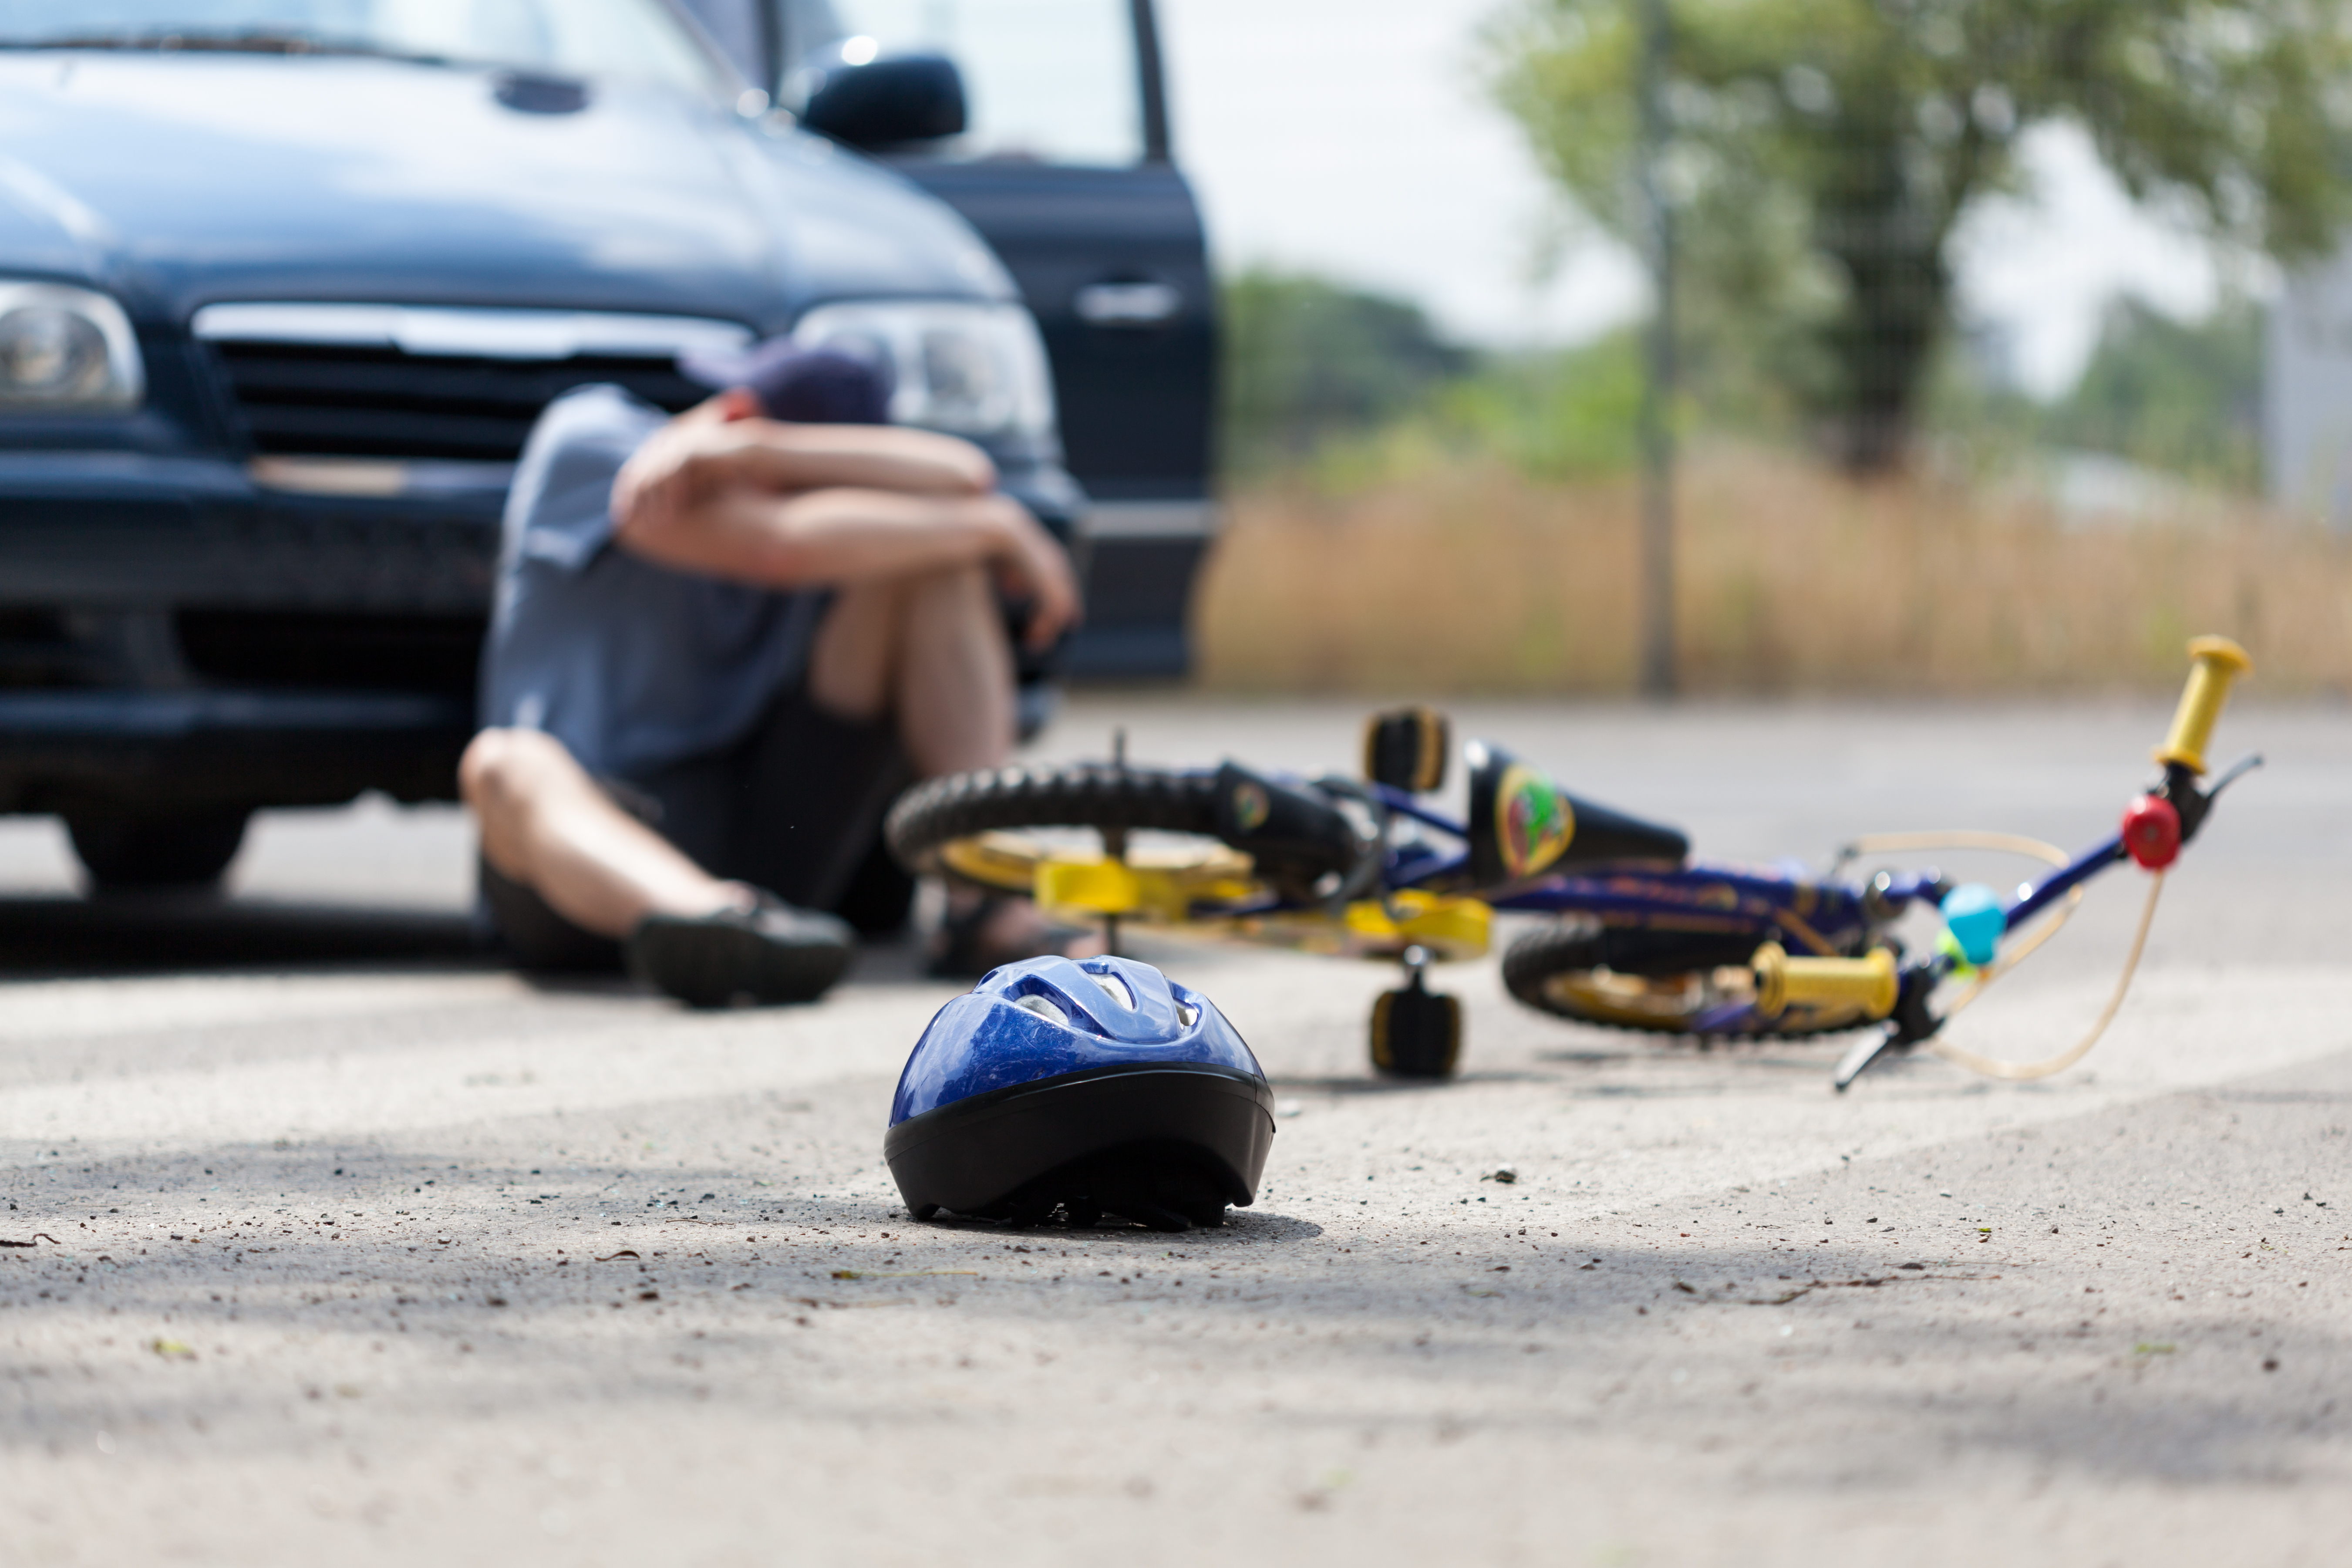 spokane valley bicycle accident attorney